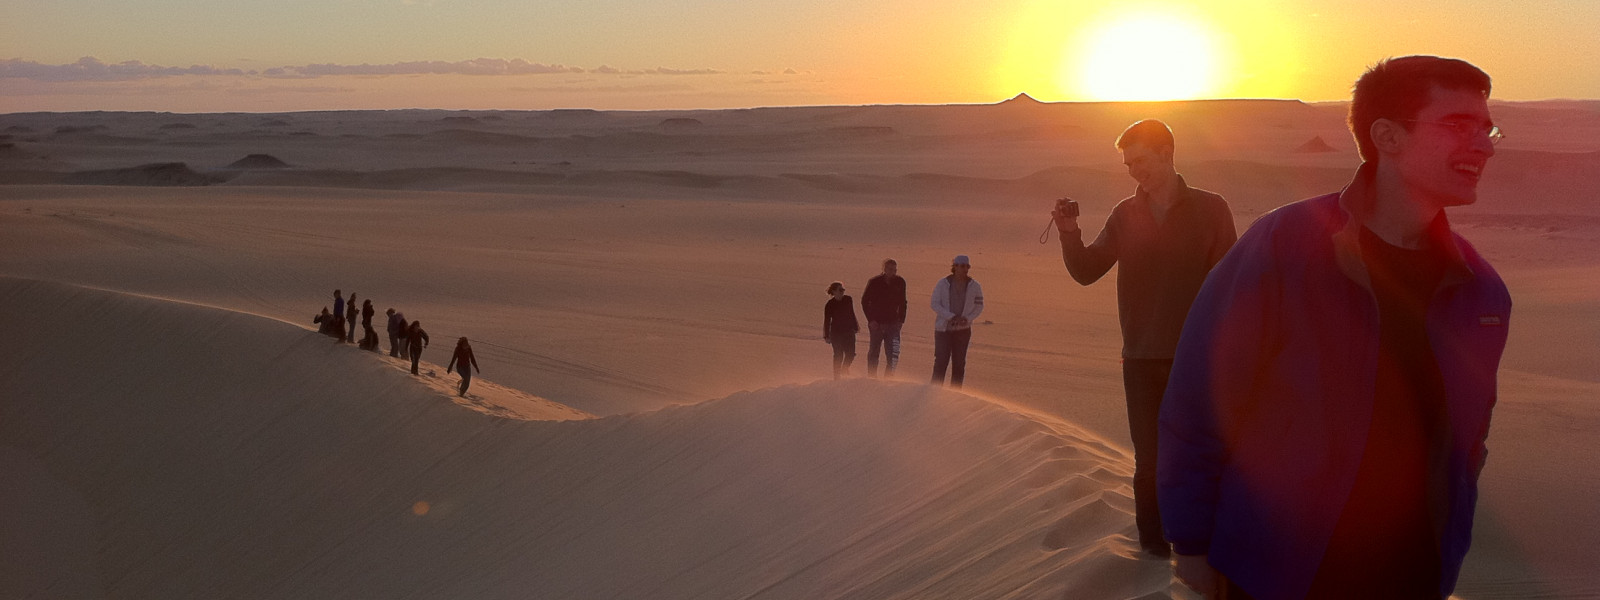 Students walk in a line on a sand dune as the sun goes down.